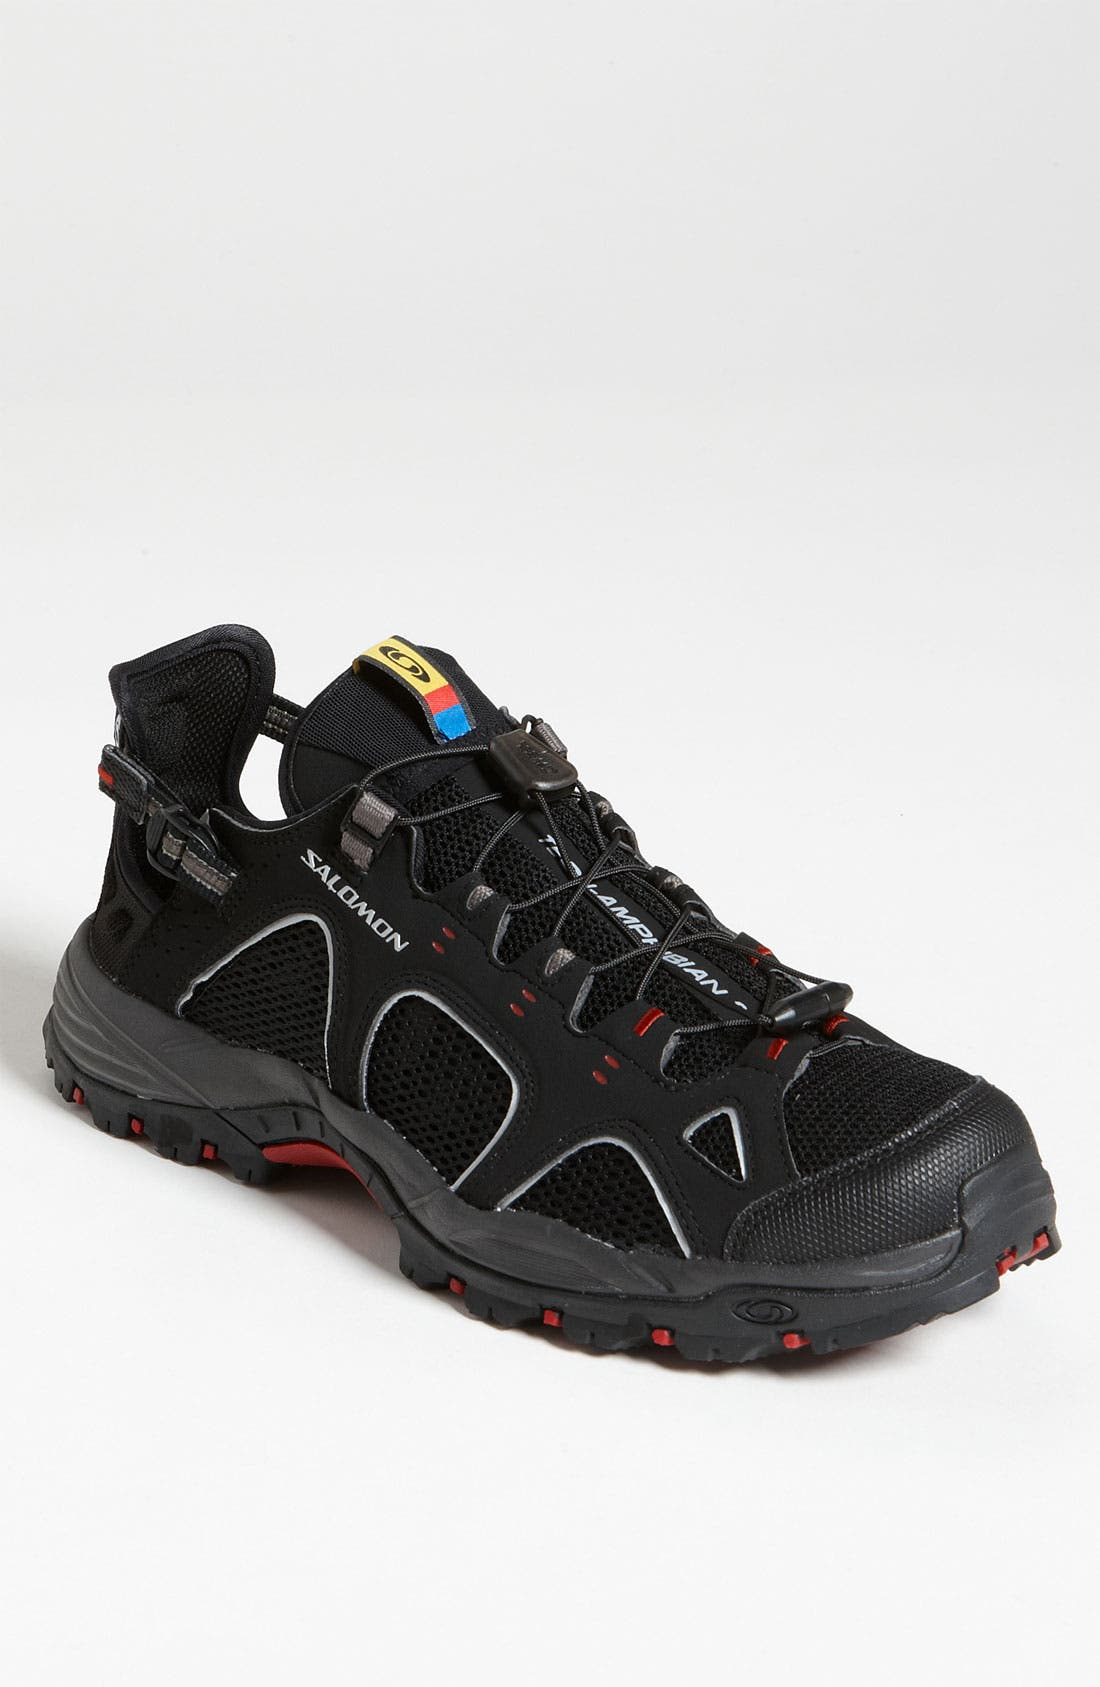 Alternate Image 1 Selected - Salomon 'Techamphibian 3' Hiking Shoe (Men)